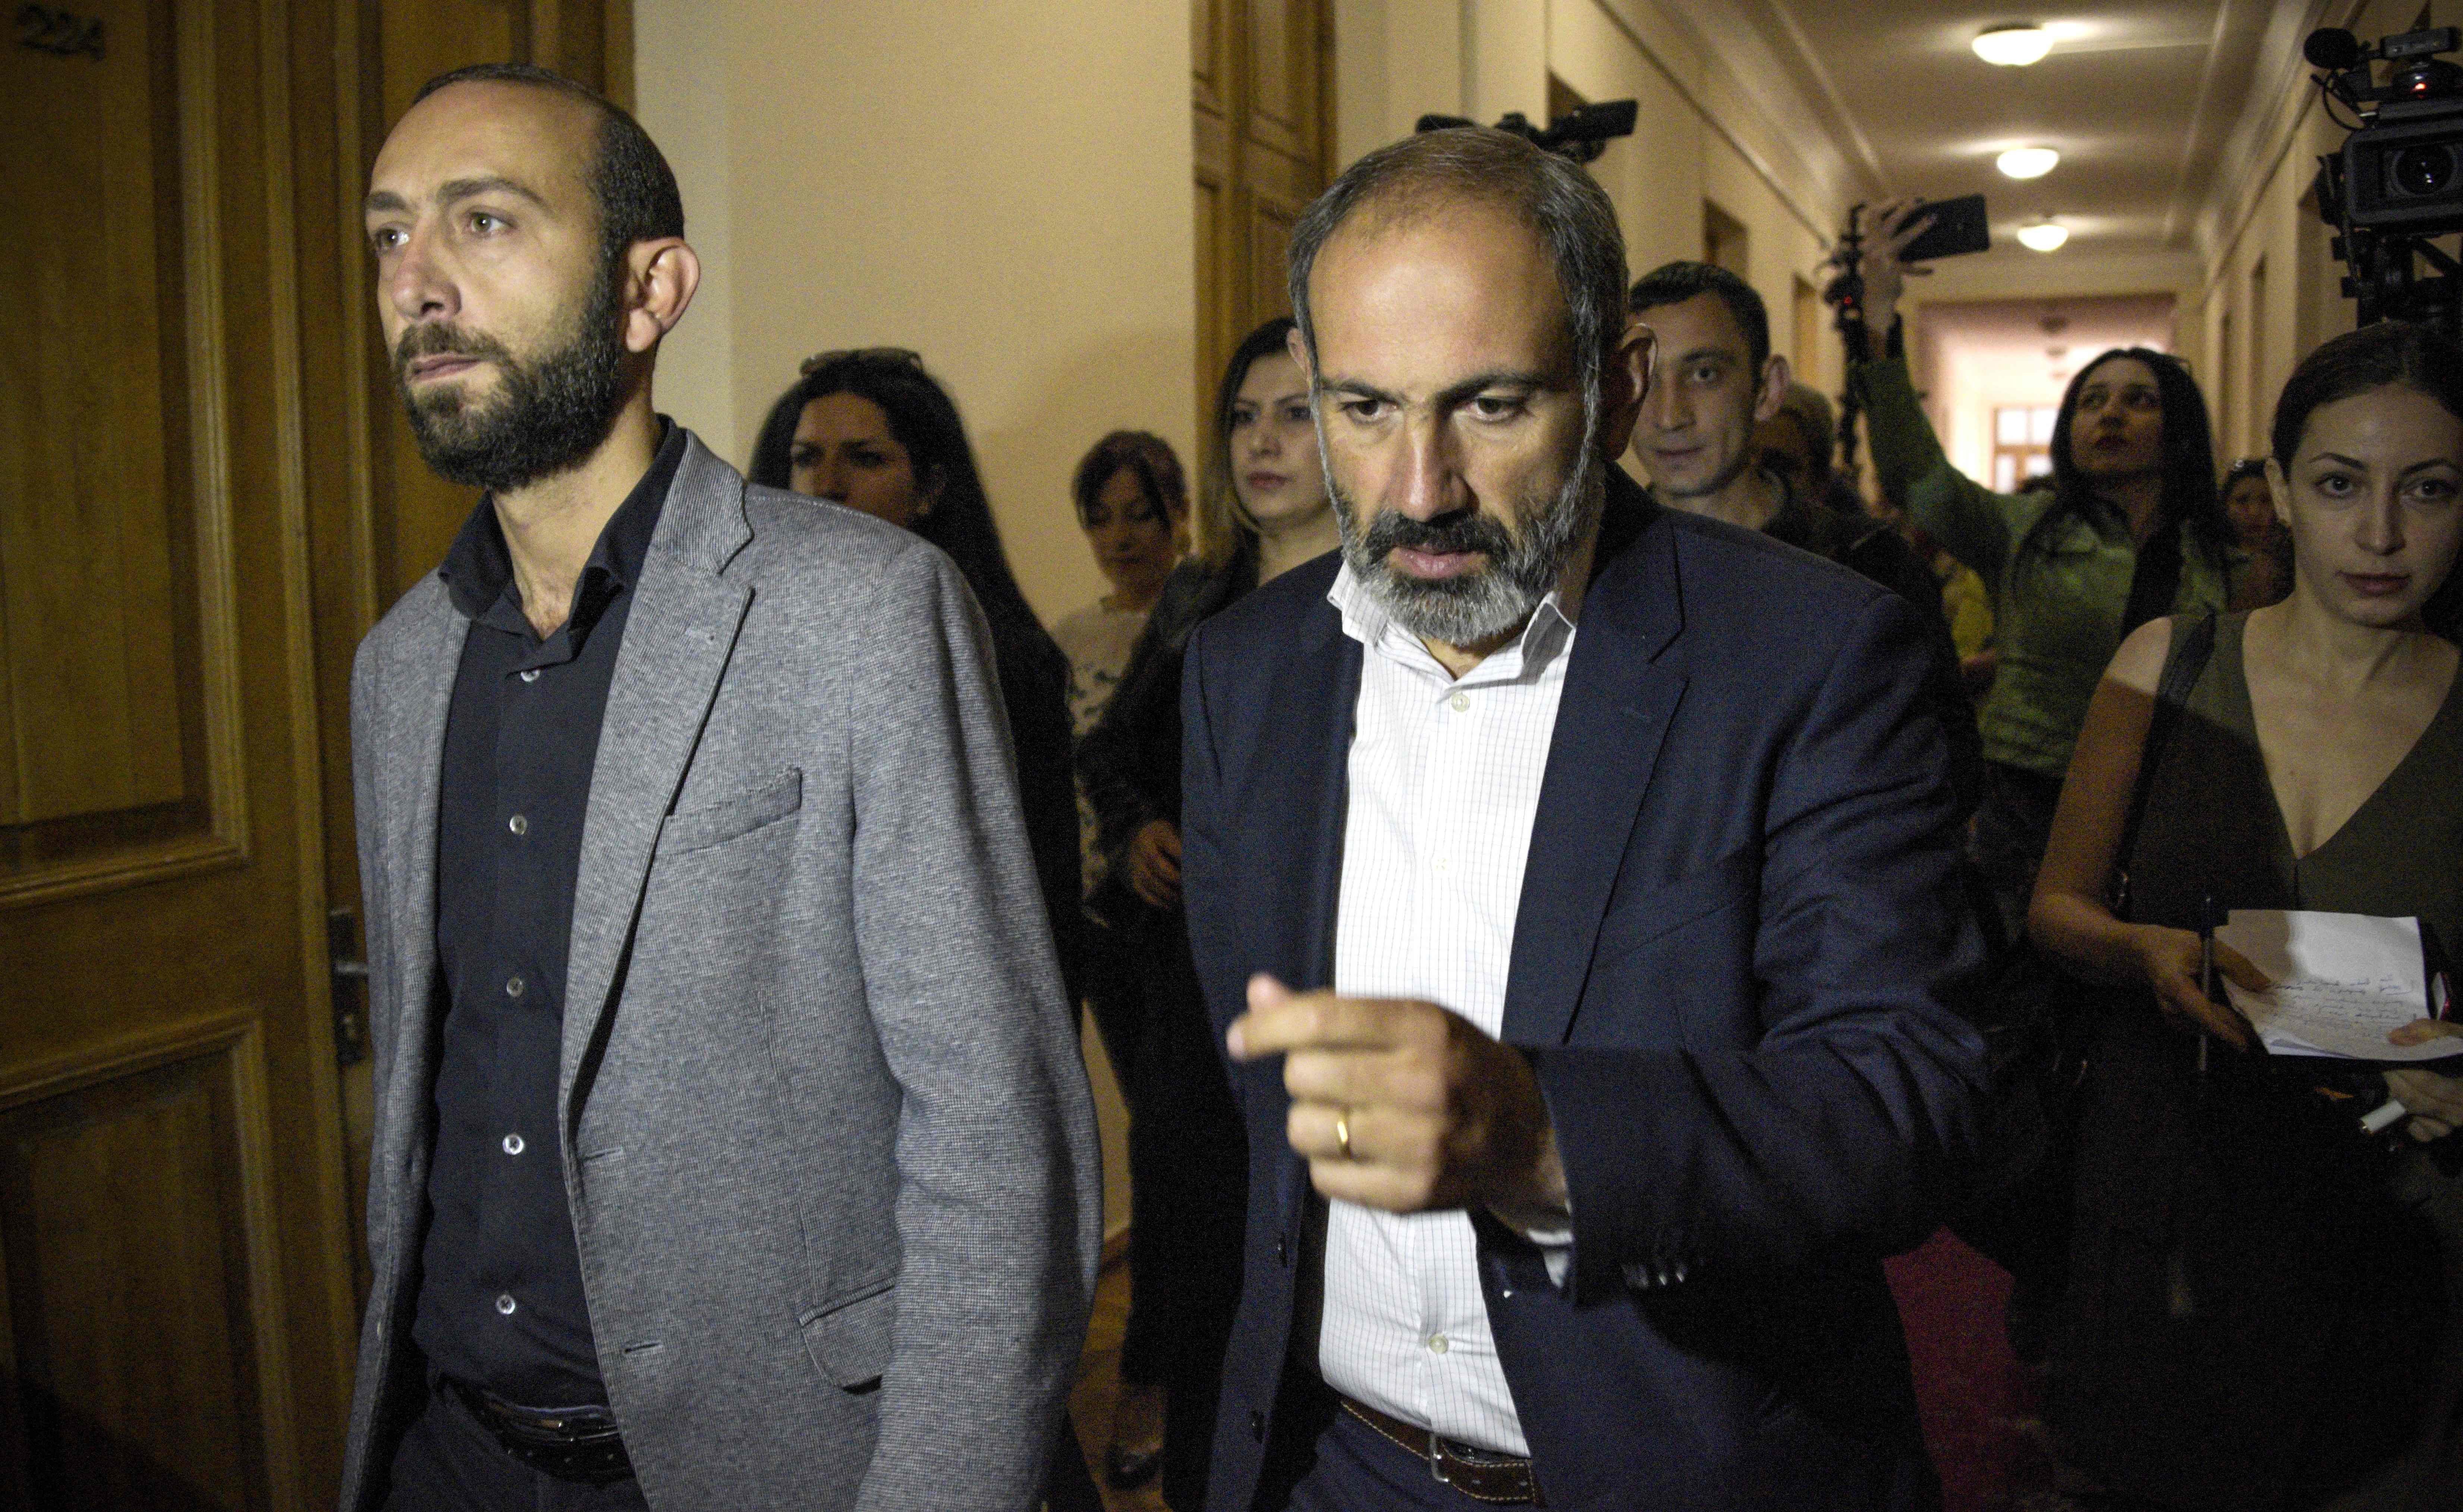 Armenian opposition leader Nikol Pashinyan (C) arrives to attend a meeting with members of the Parliament in Yerevan on April 30, 2018. Armenian opposition leader Nikol Pashinyan on April 30, 2018, was formally nominated for the post of prime minister by his supporters, inching closer to victory after two weeks of huge protests that transformed the country's political landscape. / AFP PHOTO / KAREN MINASYAN